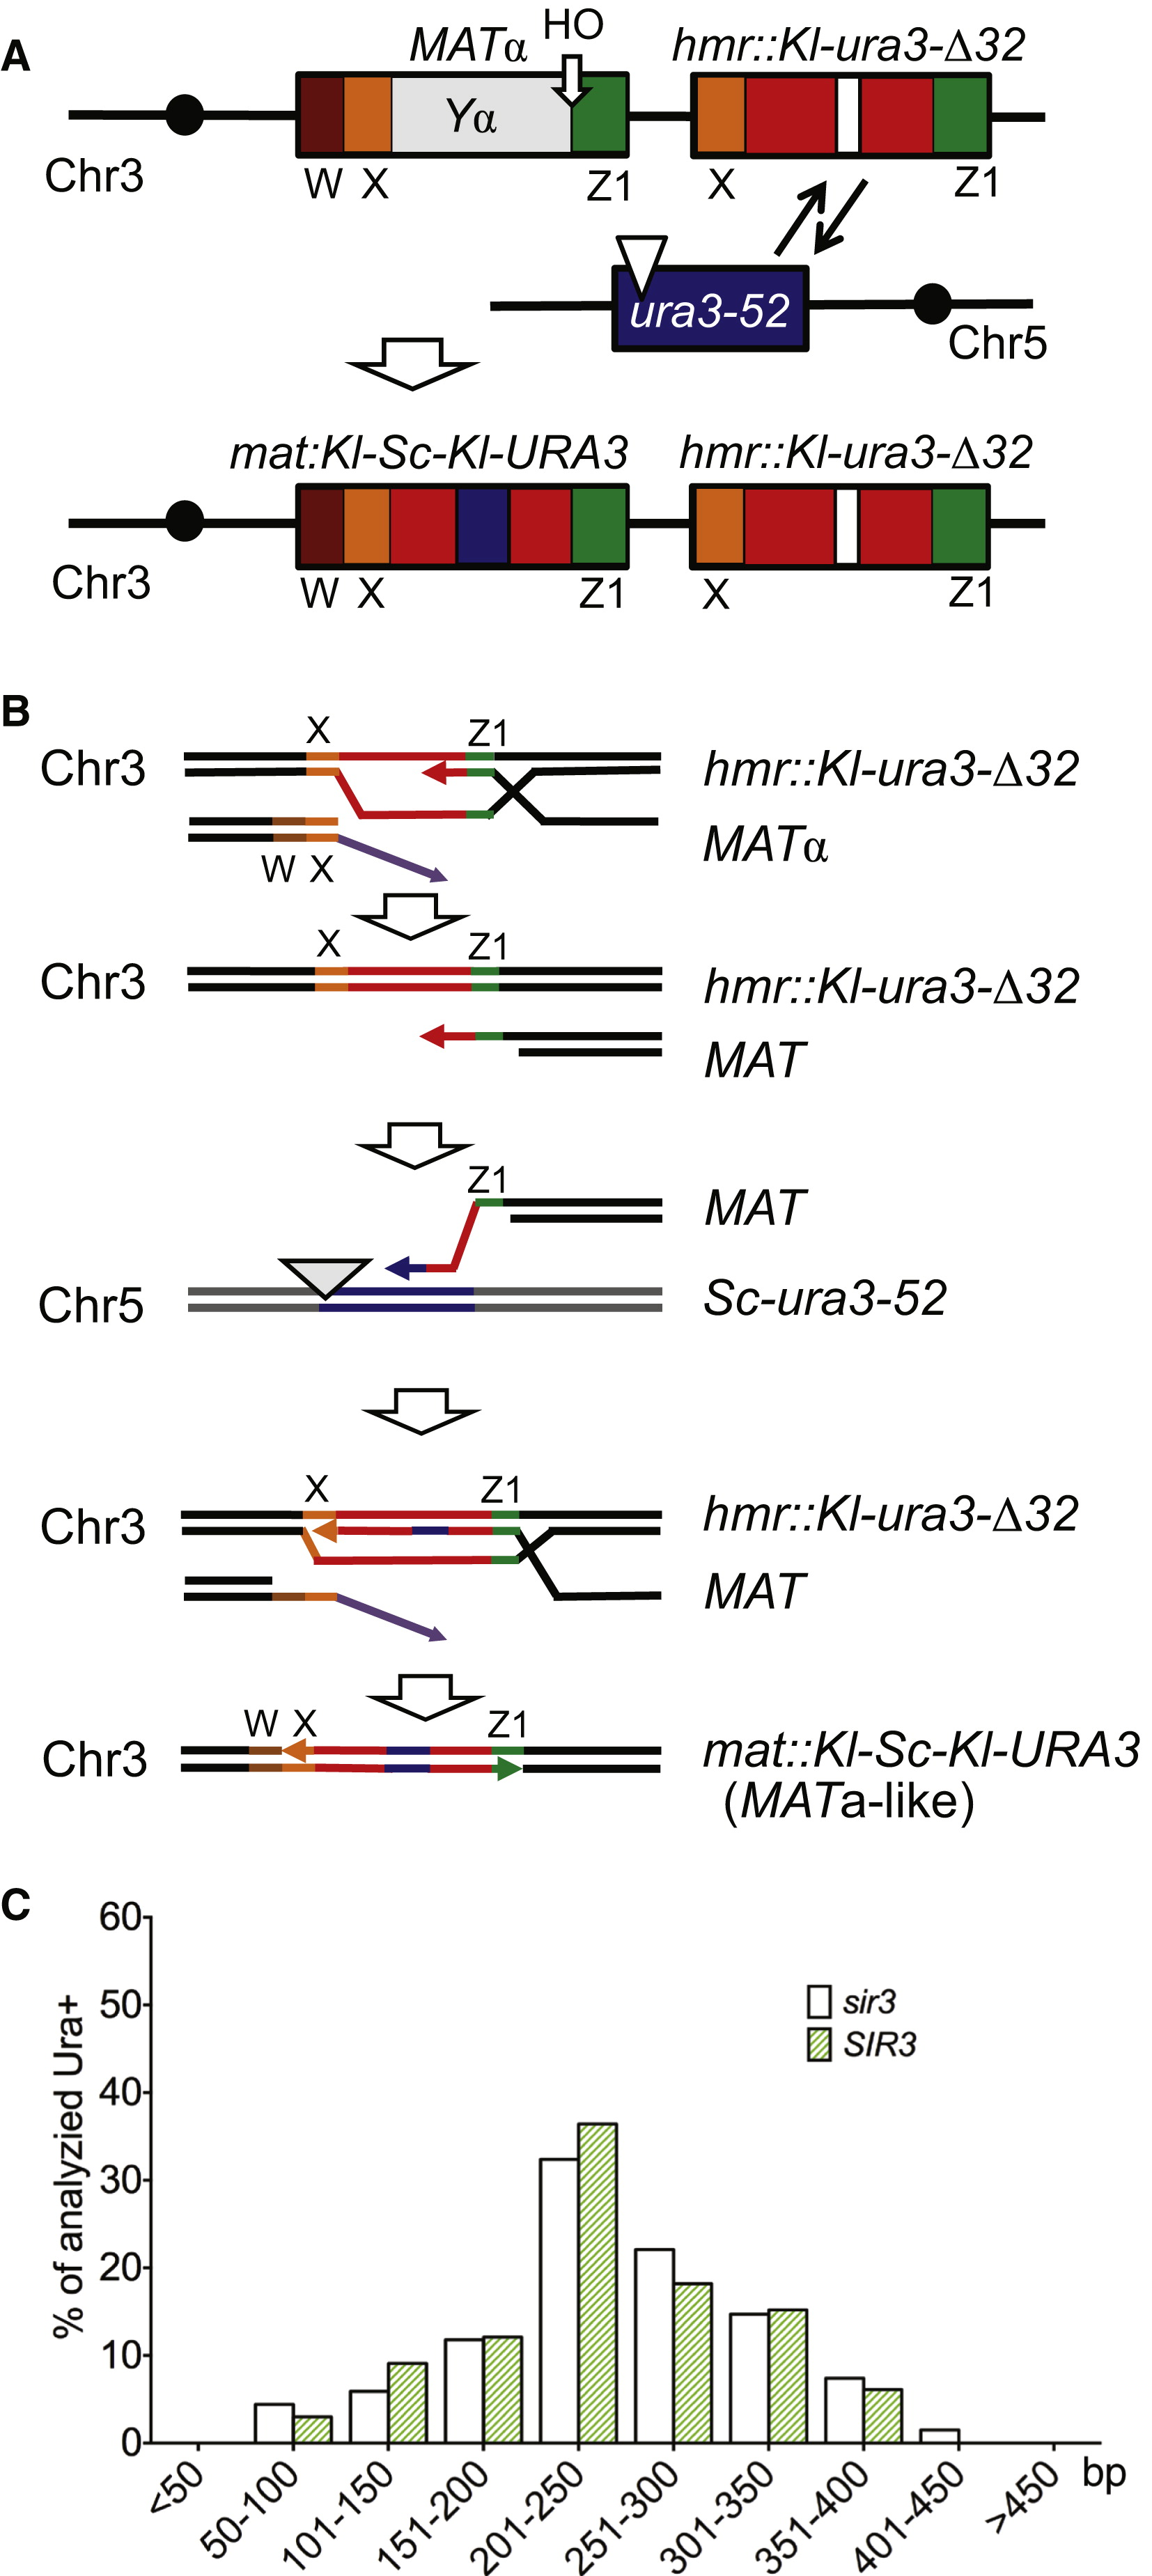 Frequent Interchromosomal Template Switches During Gene